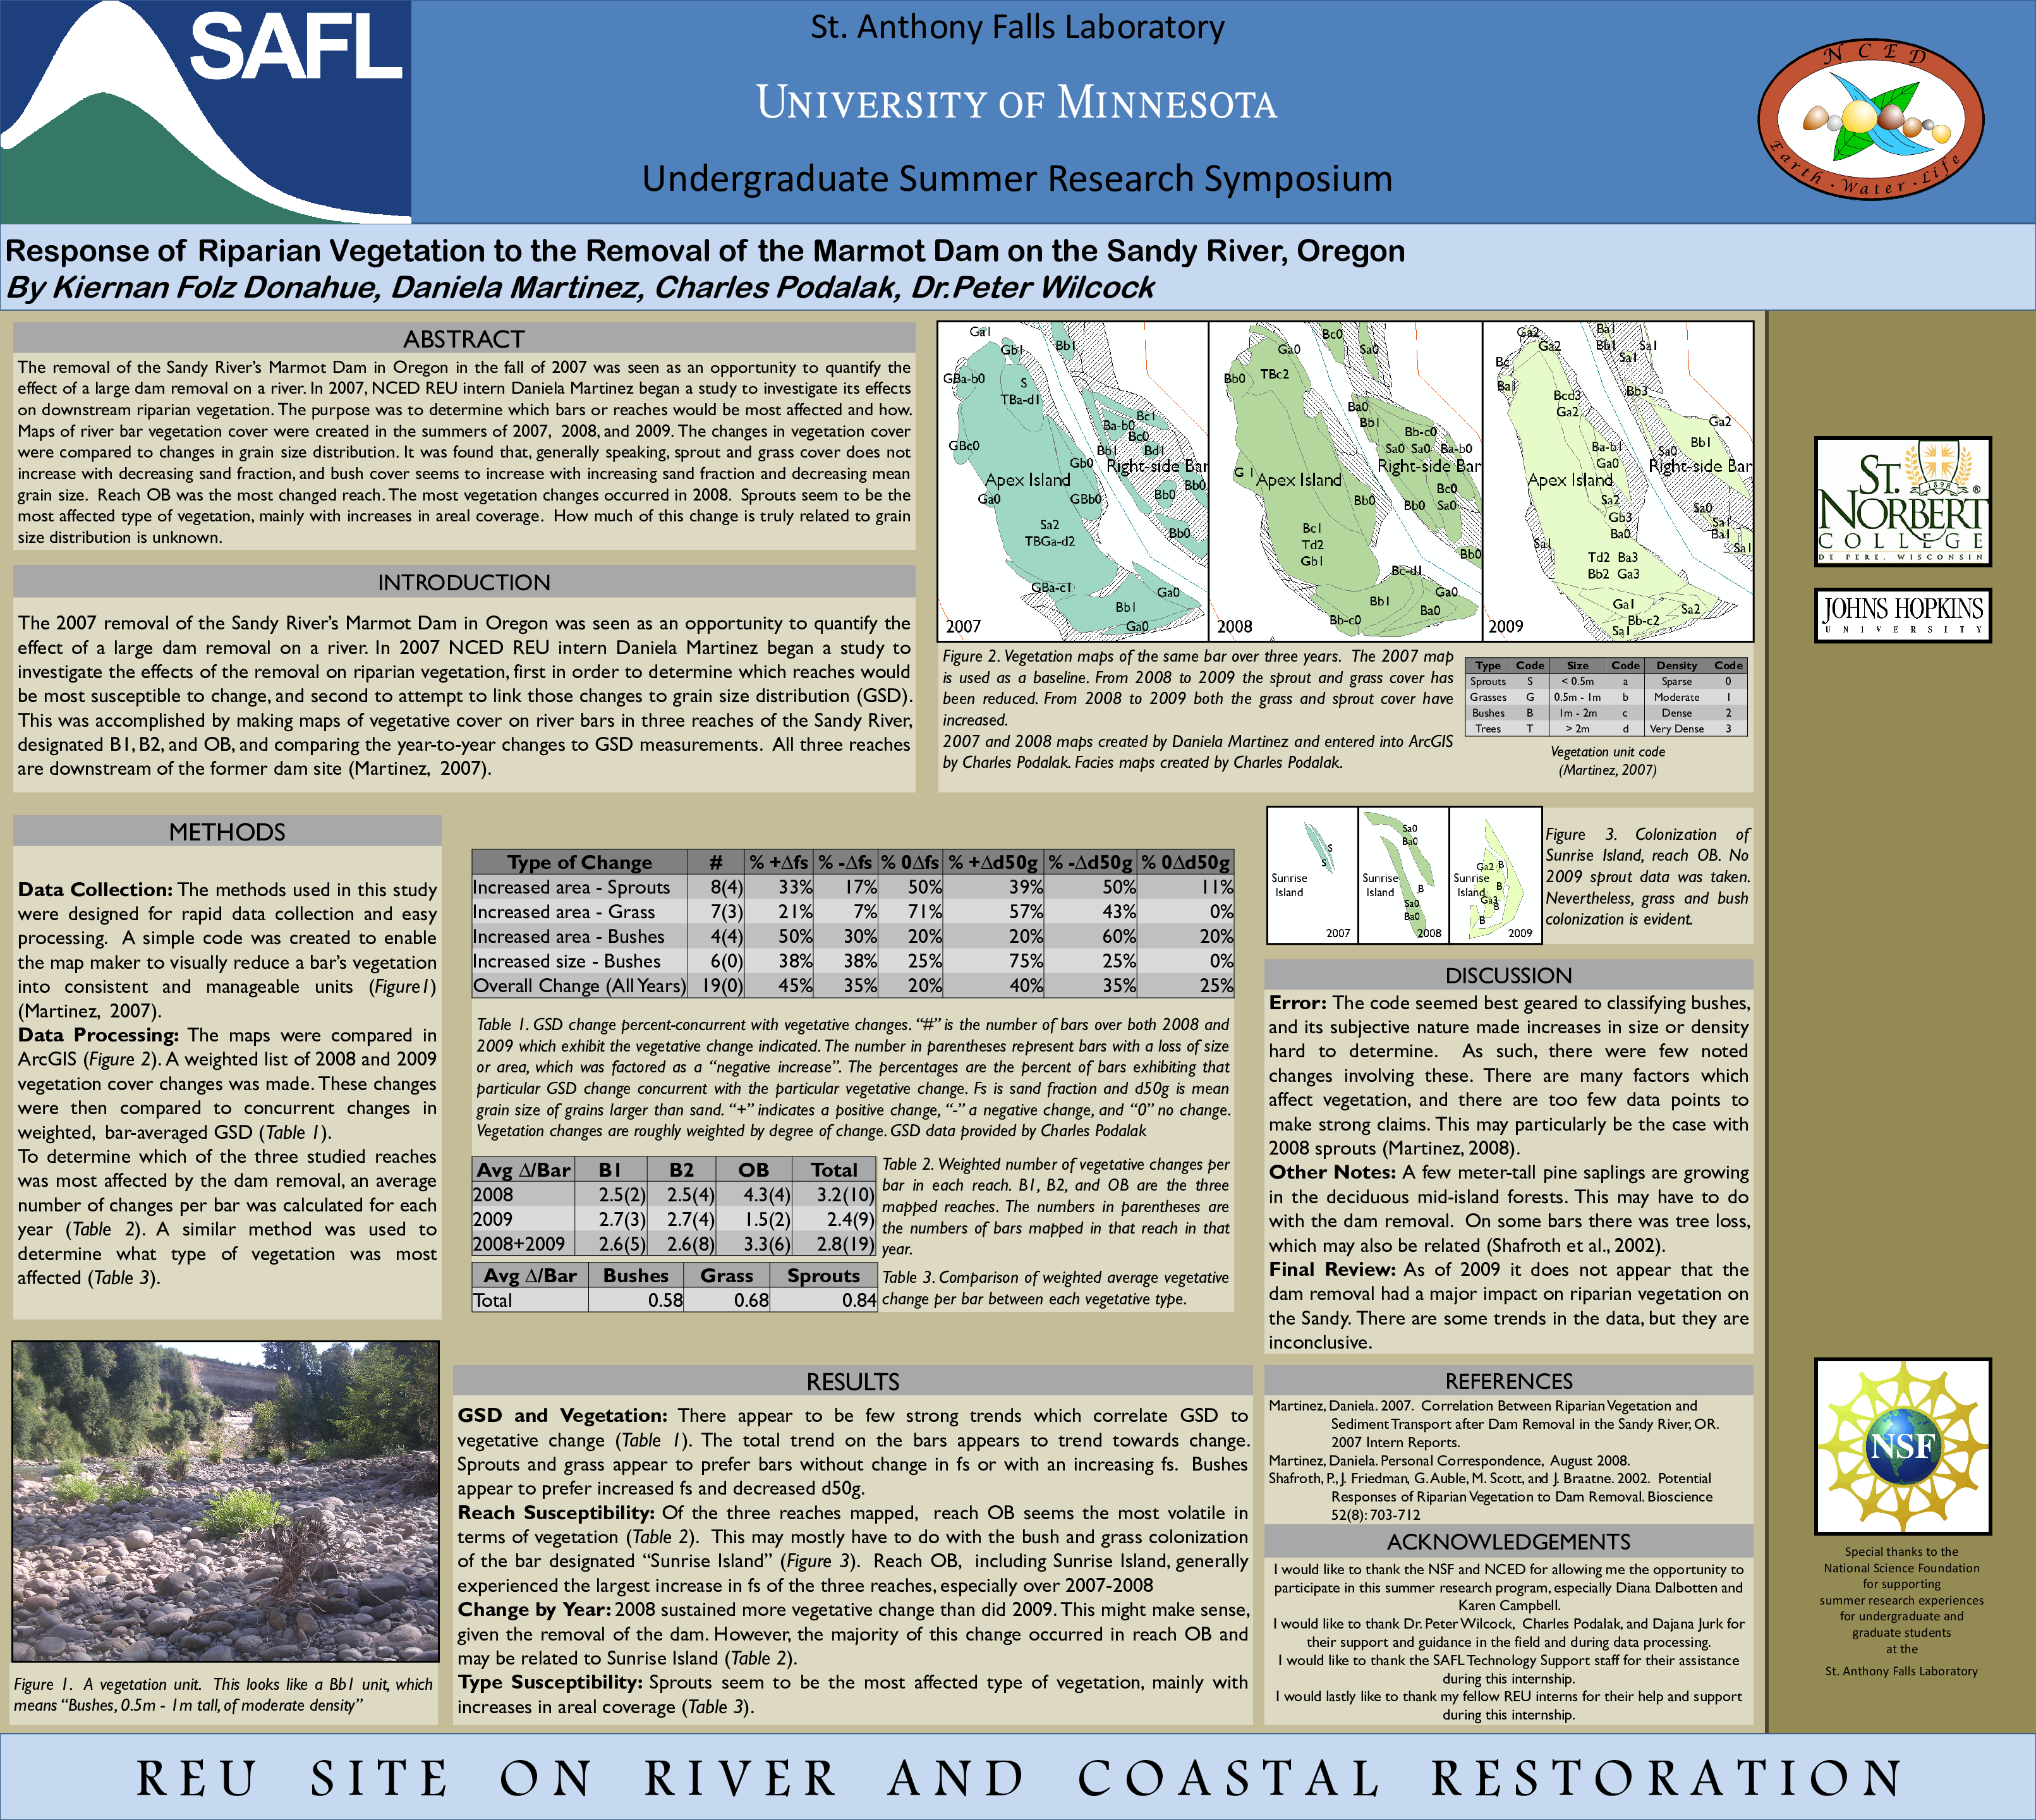 Response of Riparian Vegetation to the Removal of the Marmot Dam on the Sandy River, Oregon - POSTER